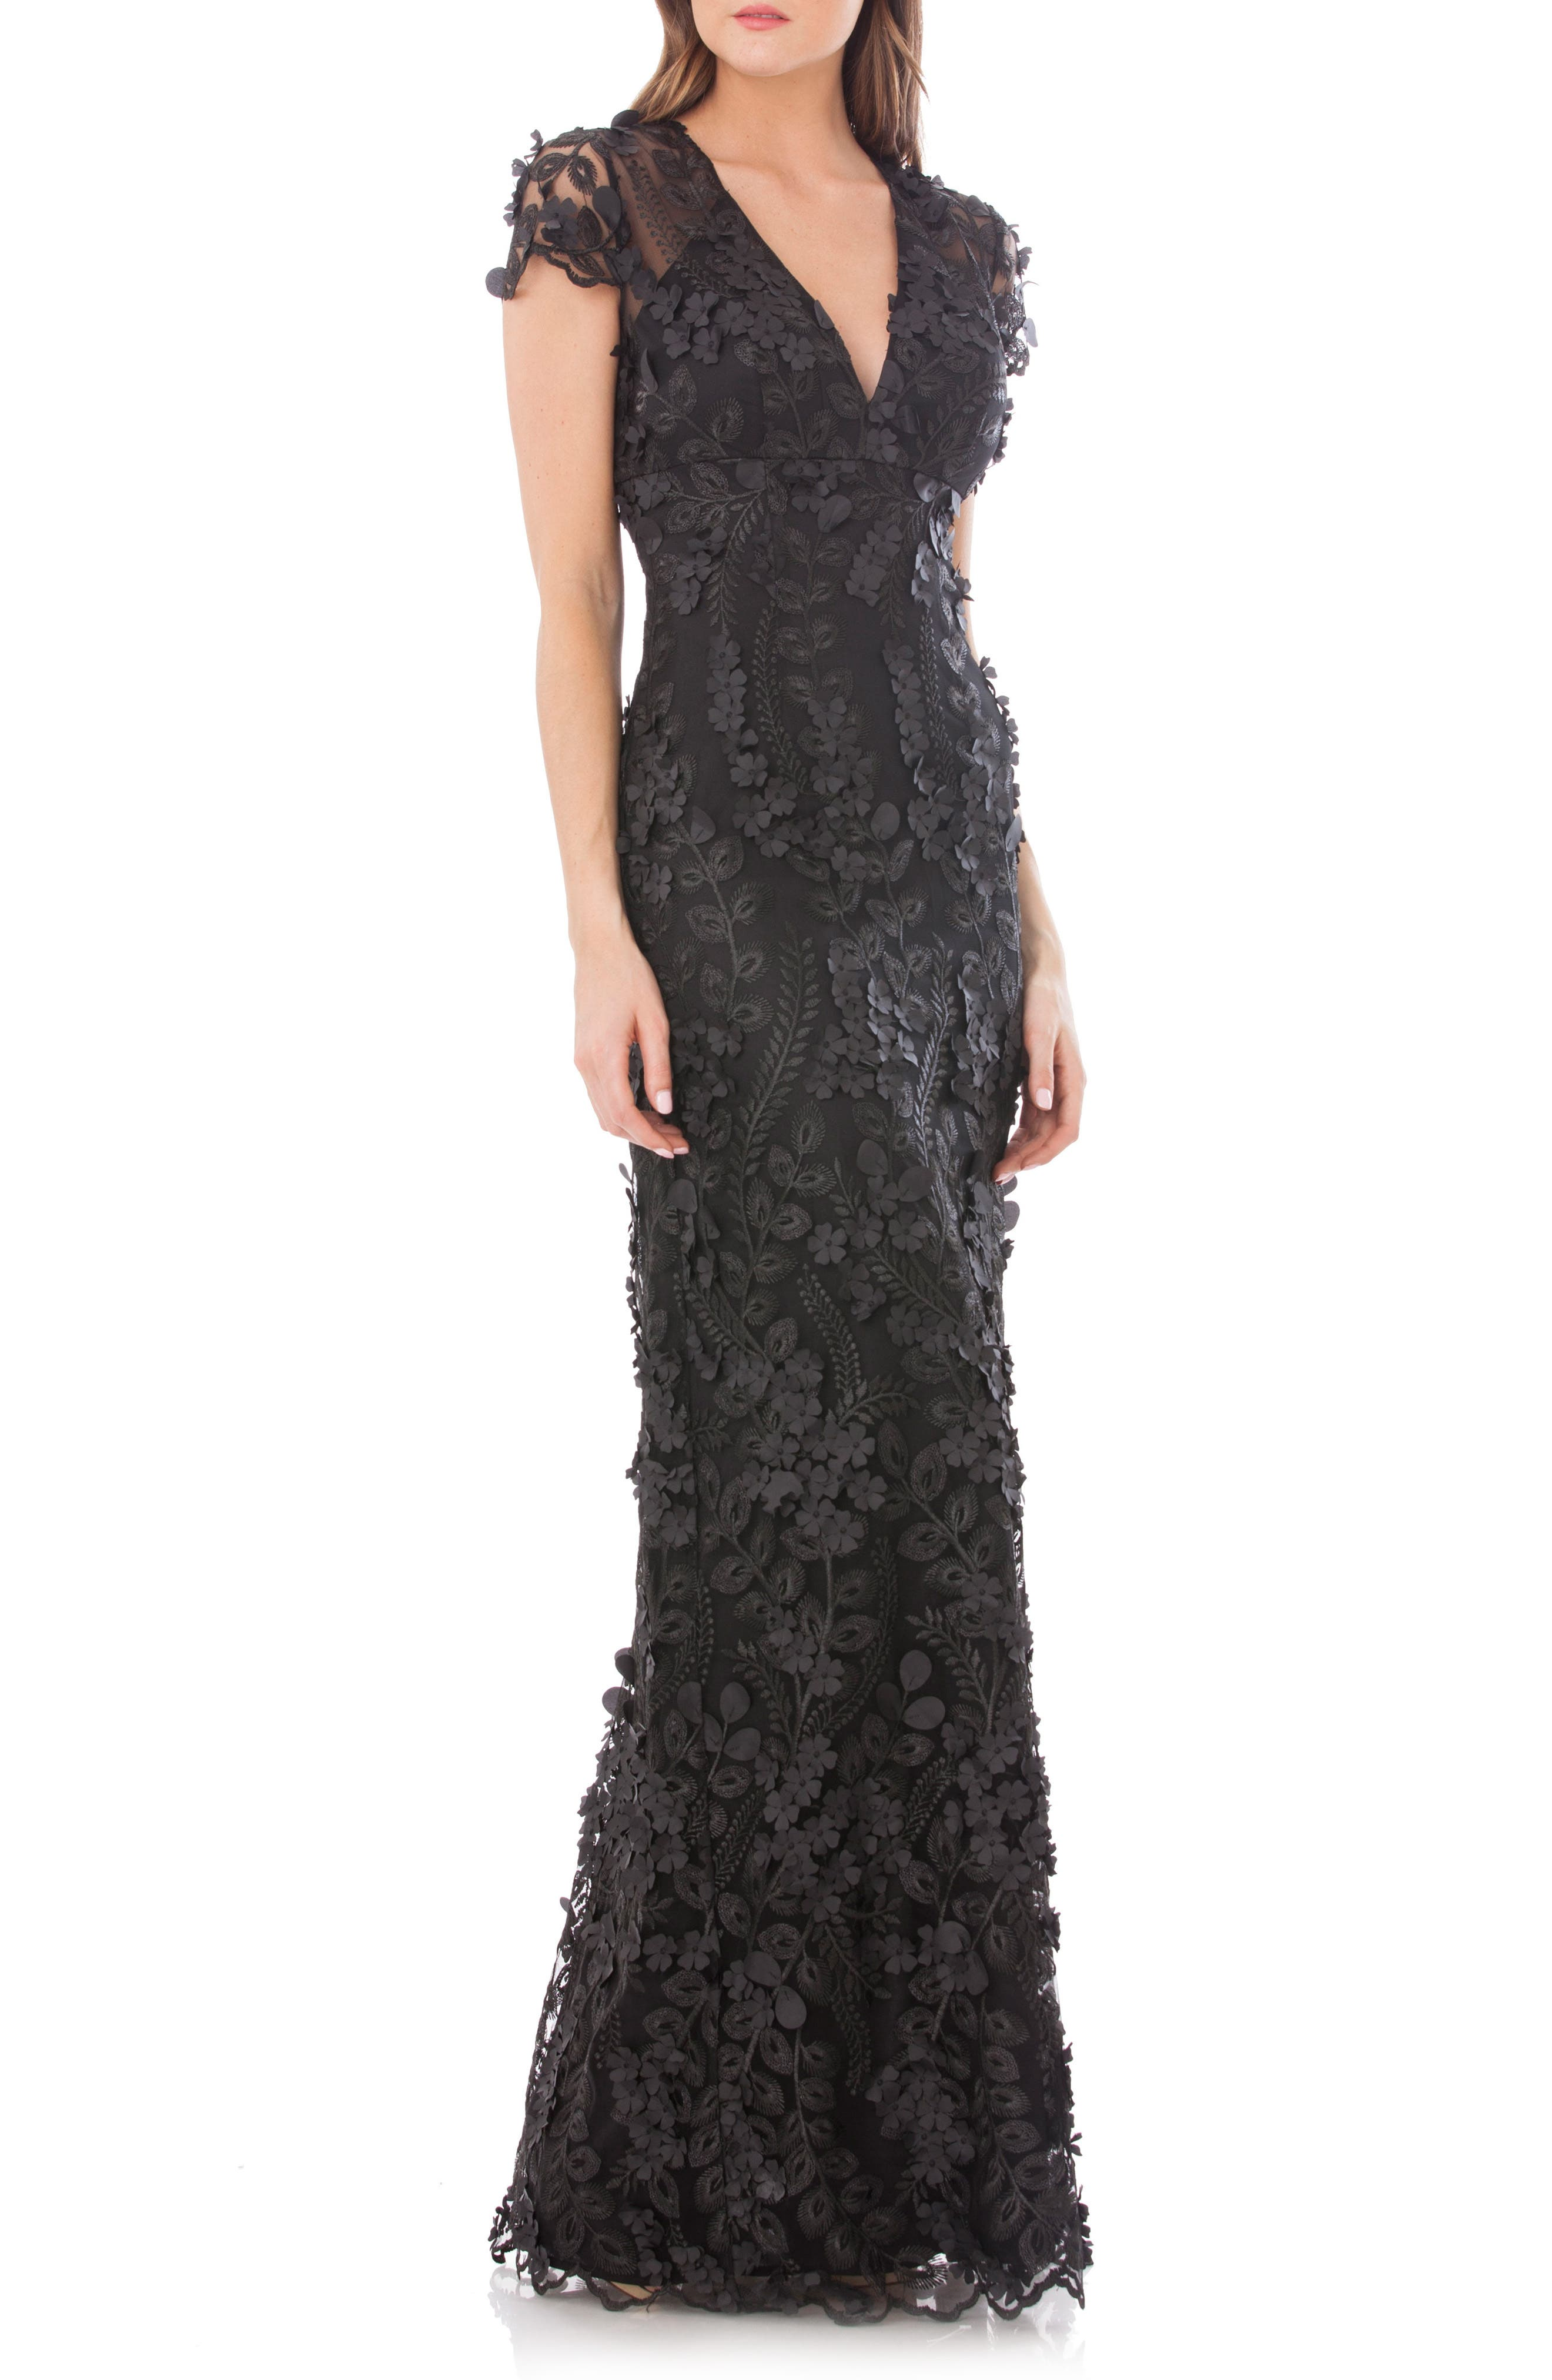 Petals Embellished Gown,                             Main thumbnail 1, color,                             Black